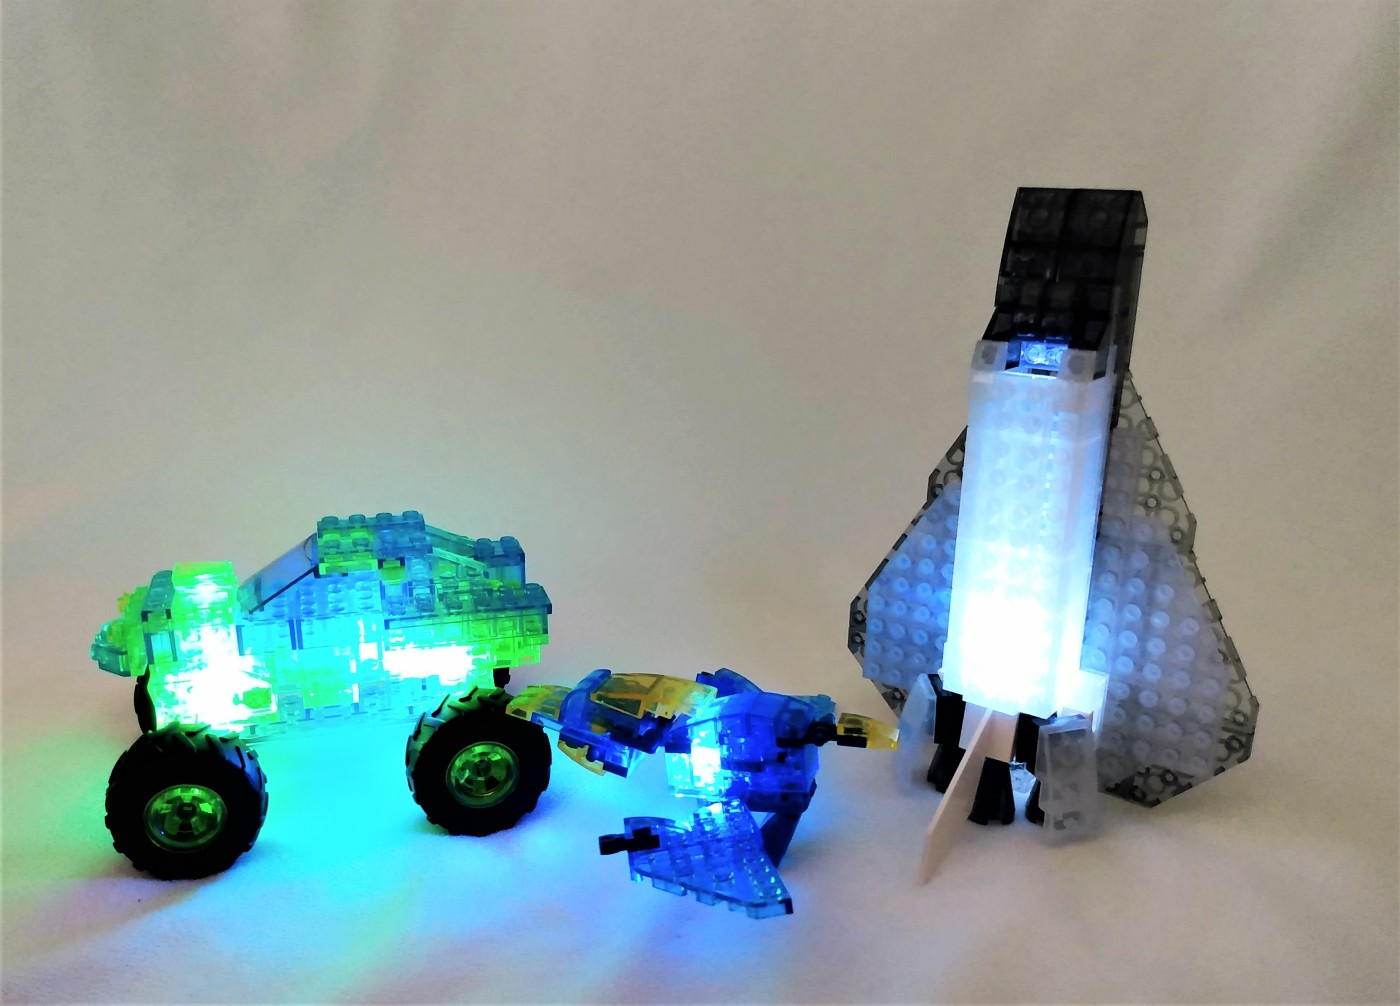 laser pegs light up bricks mega truck aircraft and pterodactyl building kit review